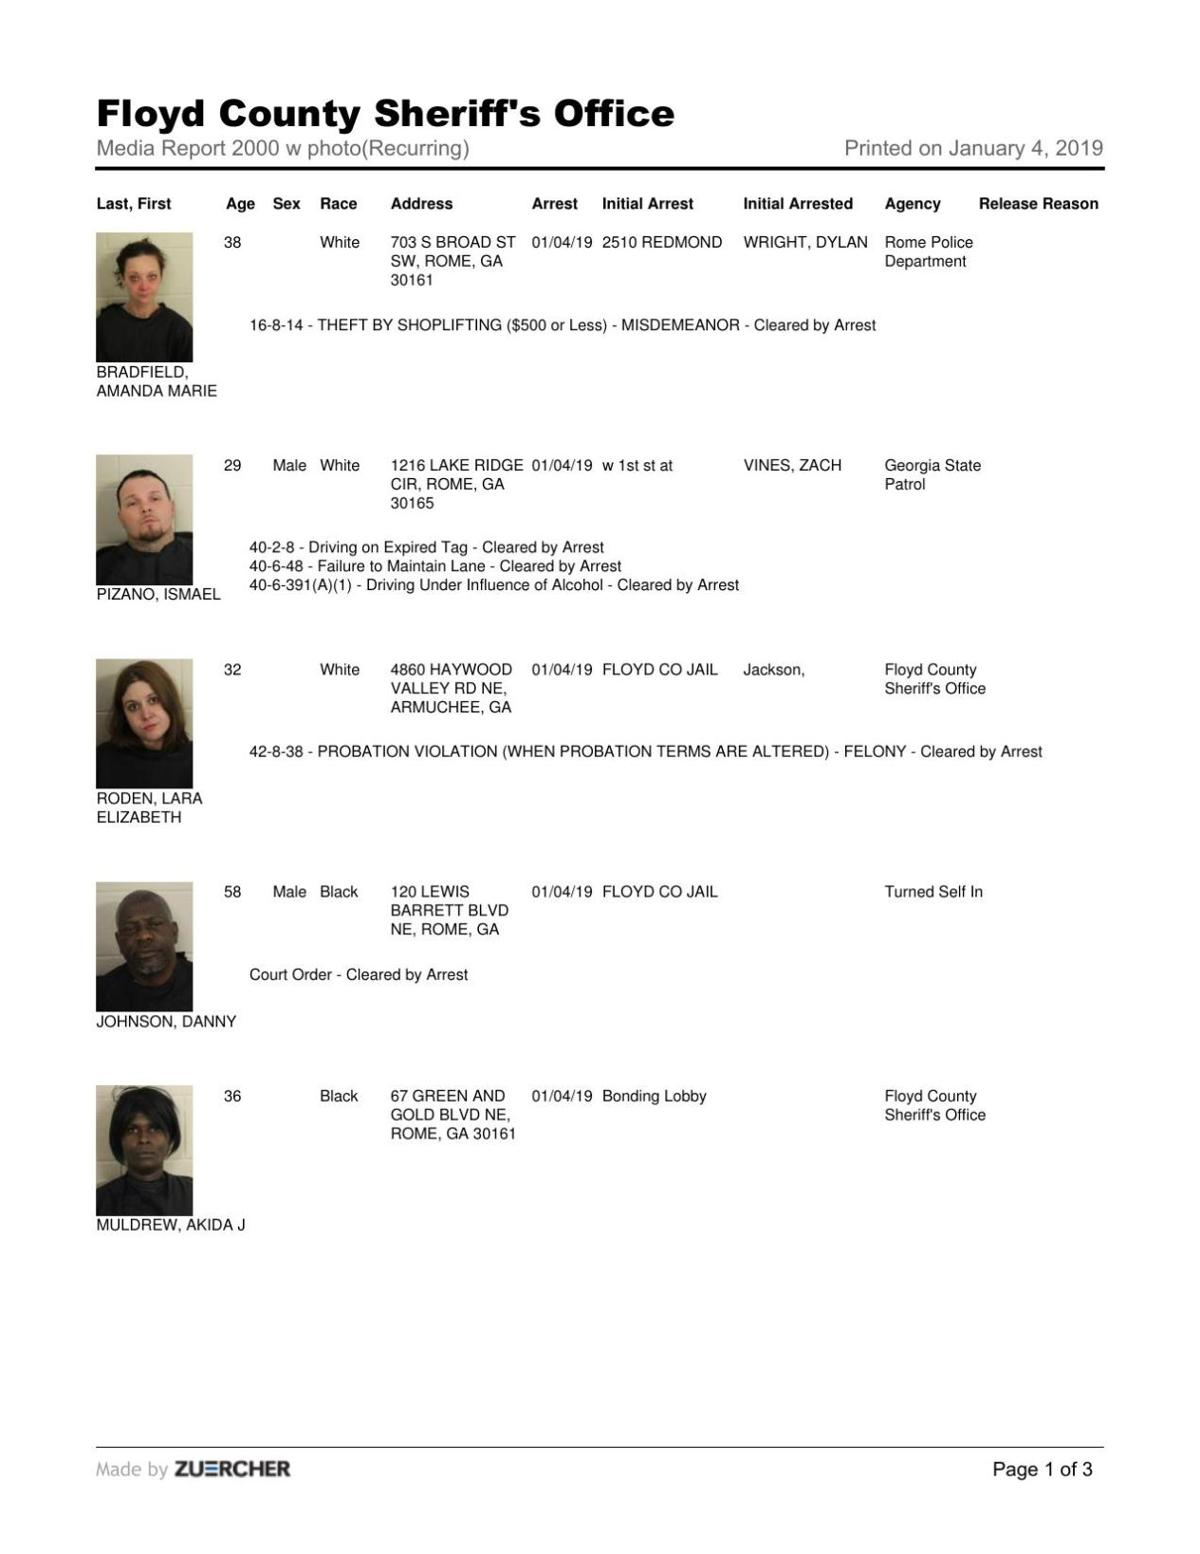 Floyd County Jail report for Friday, Jan. 4